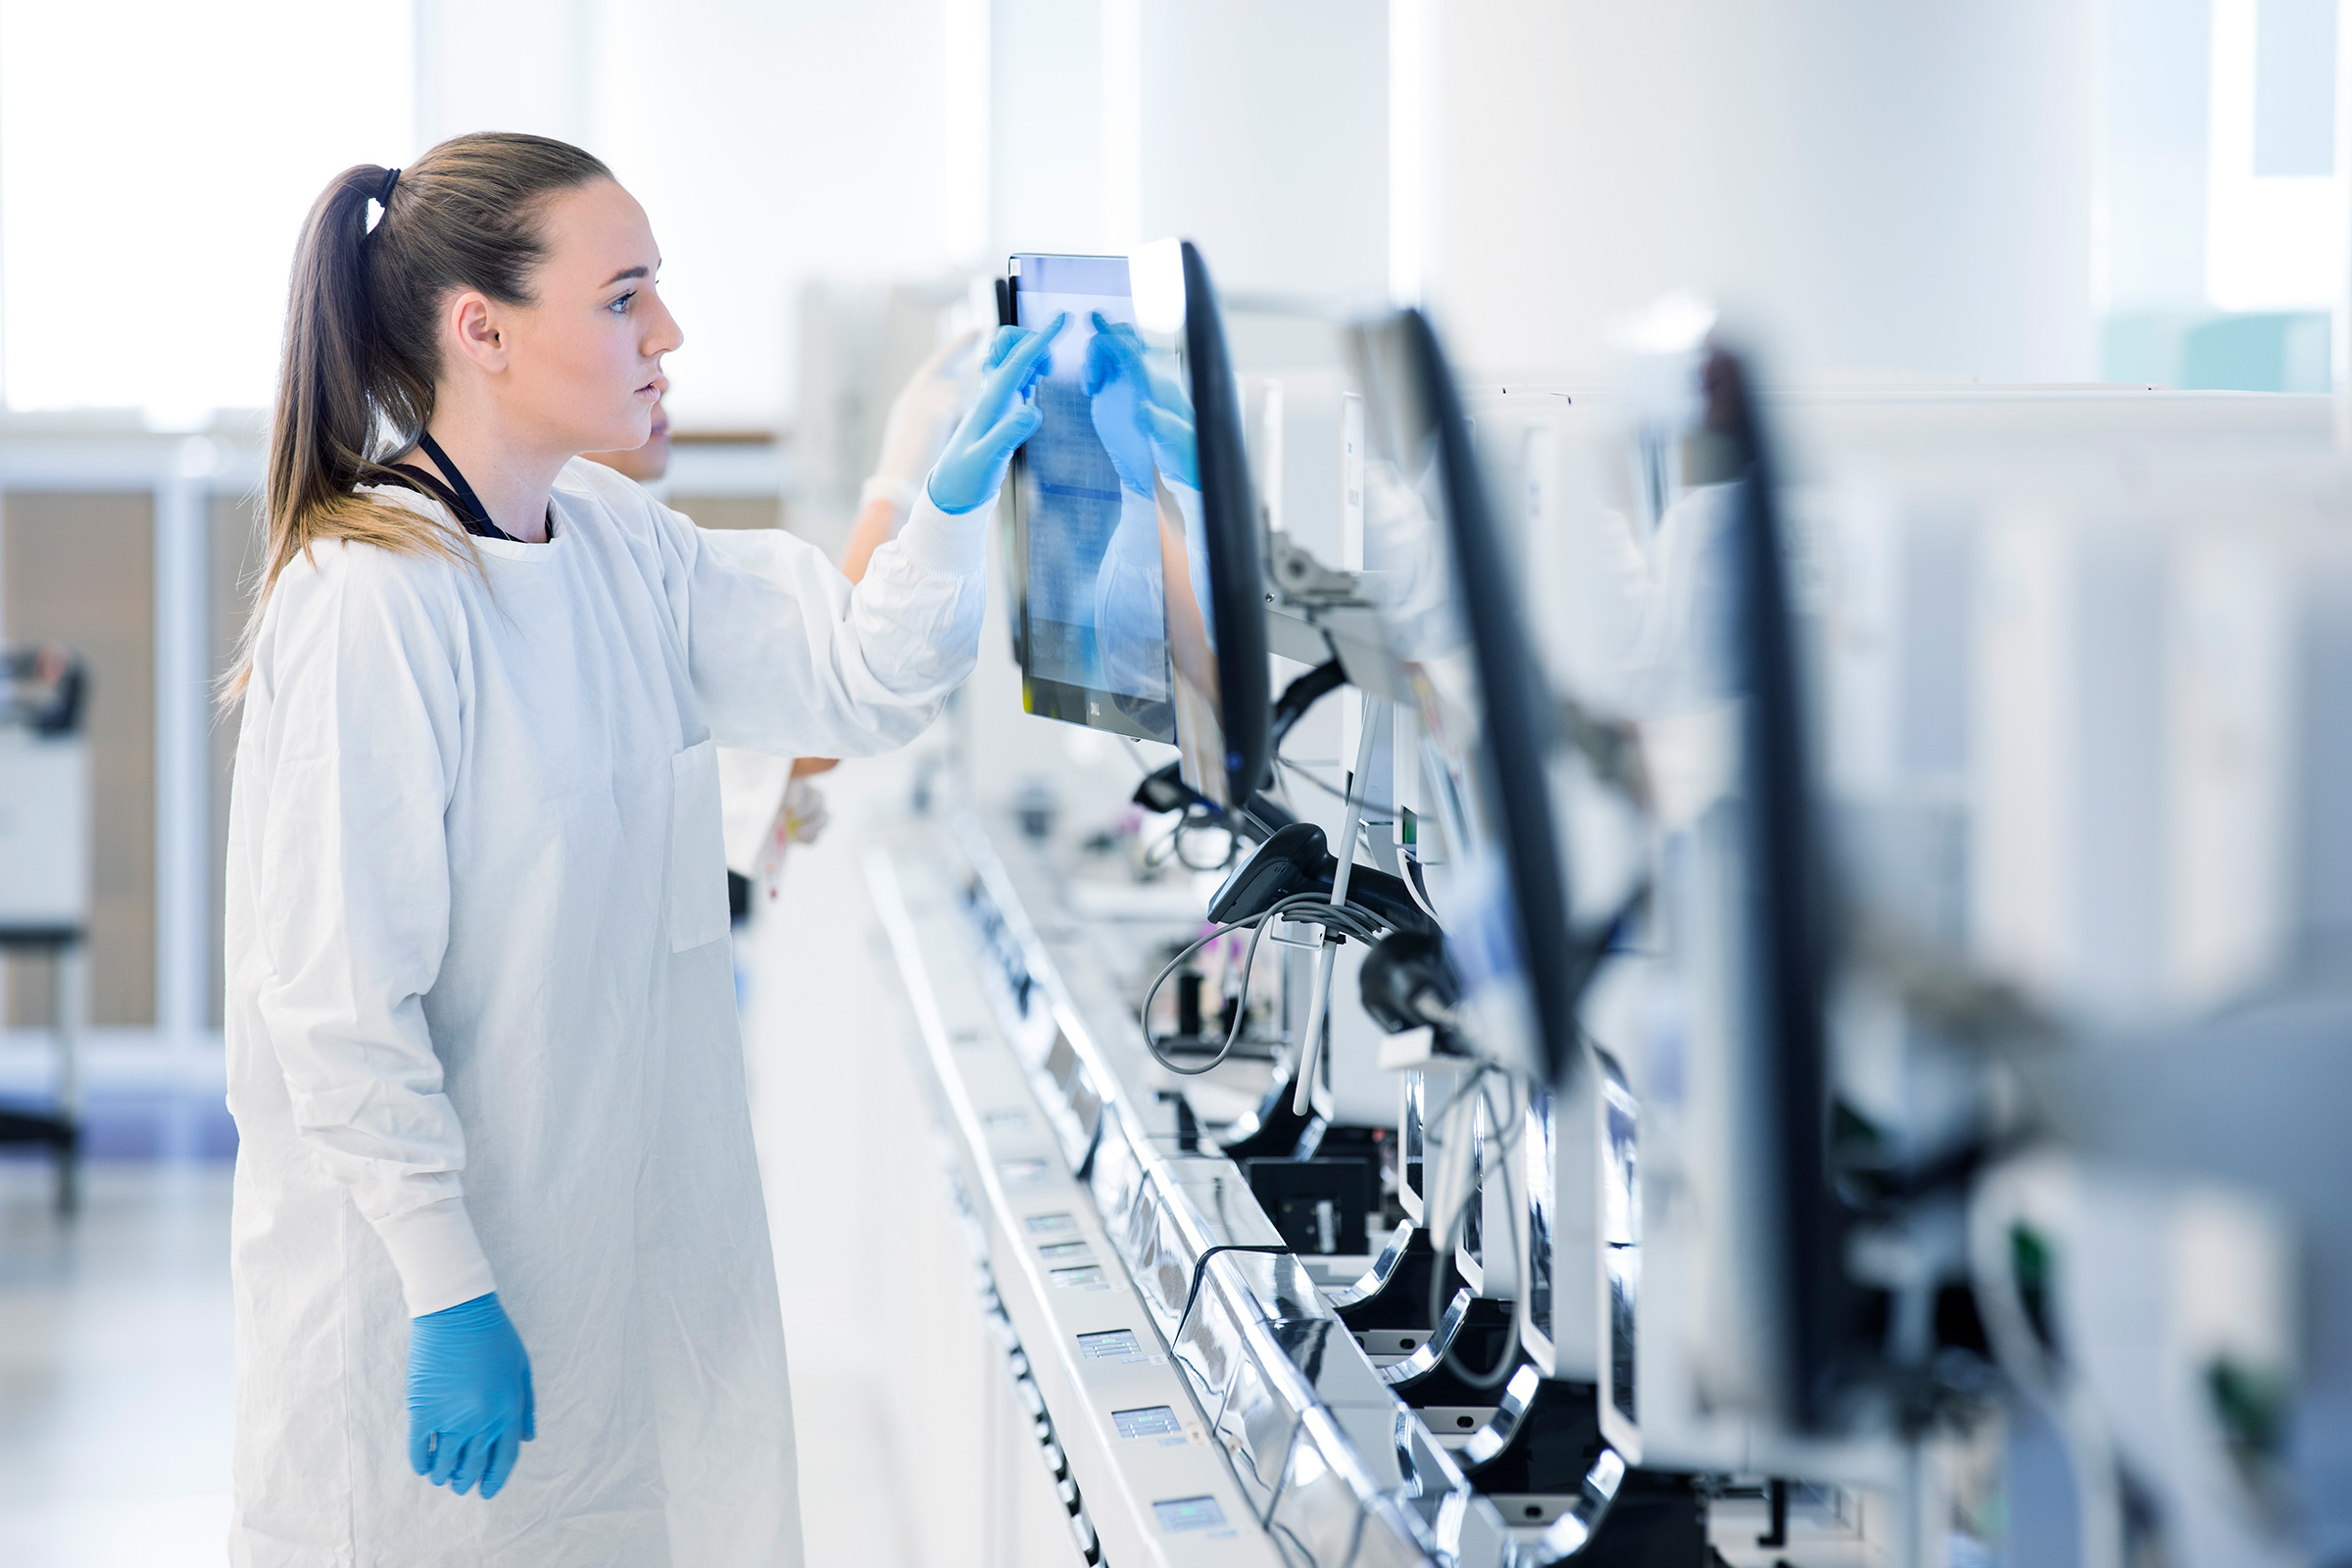 Corporate photography Sonic Healthcare Annual Report female wearing white lab coat blue gloves at touchscreen